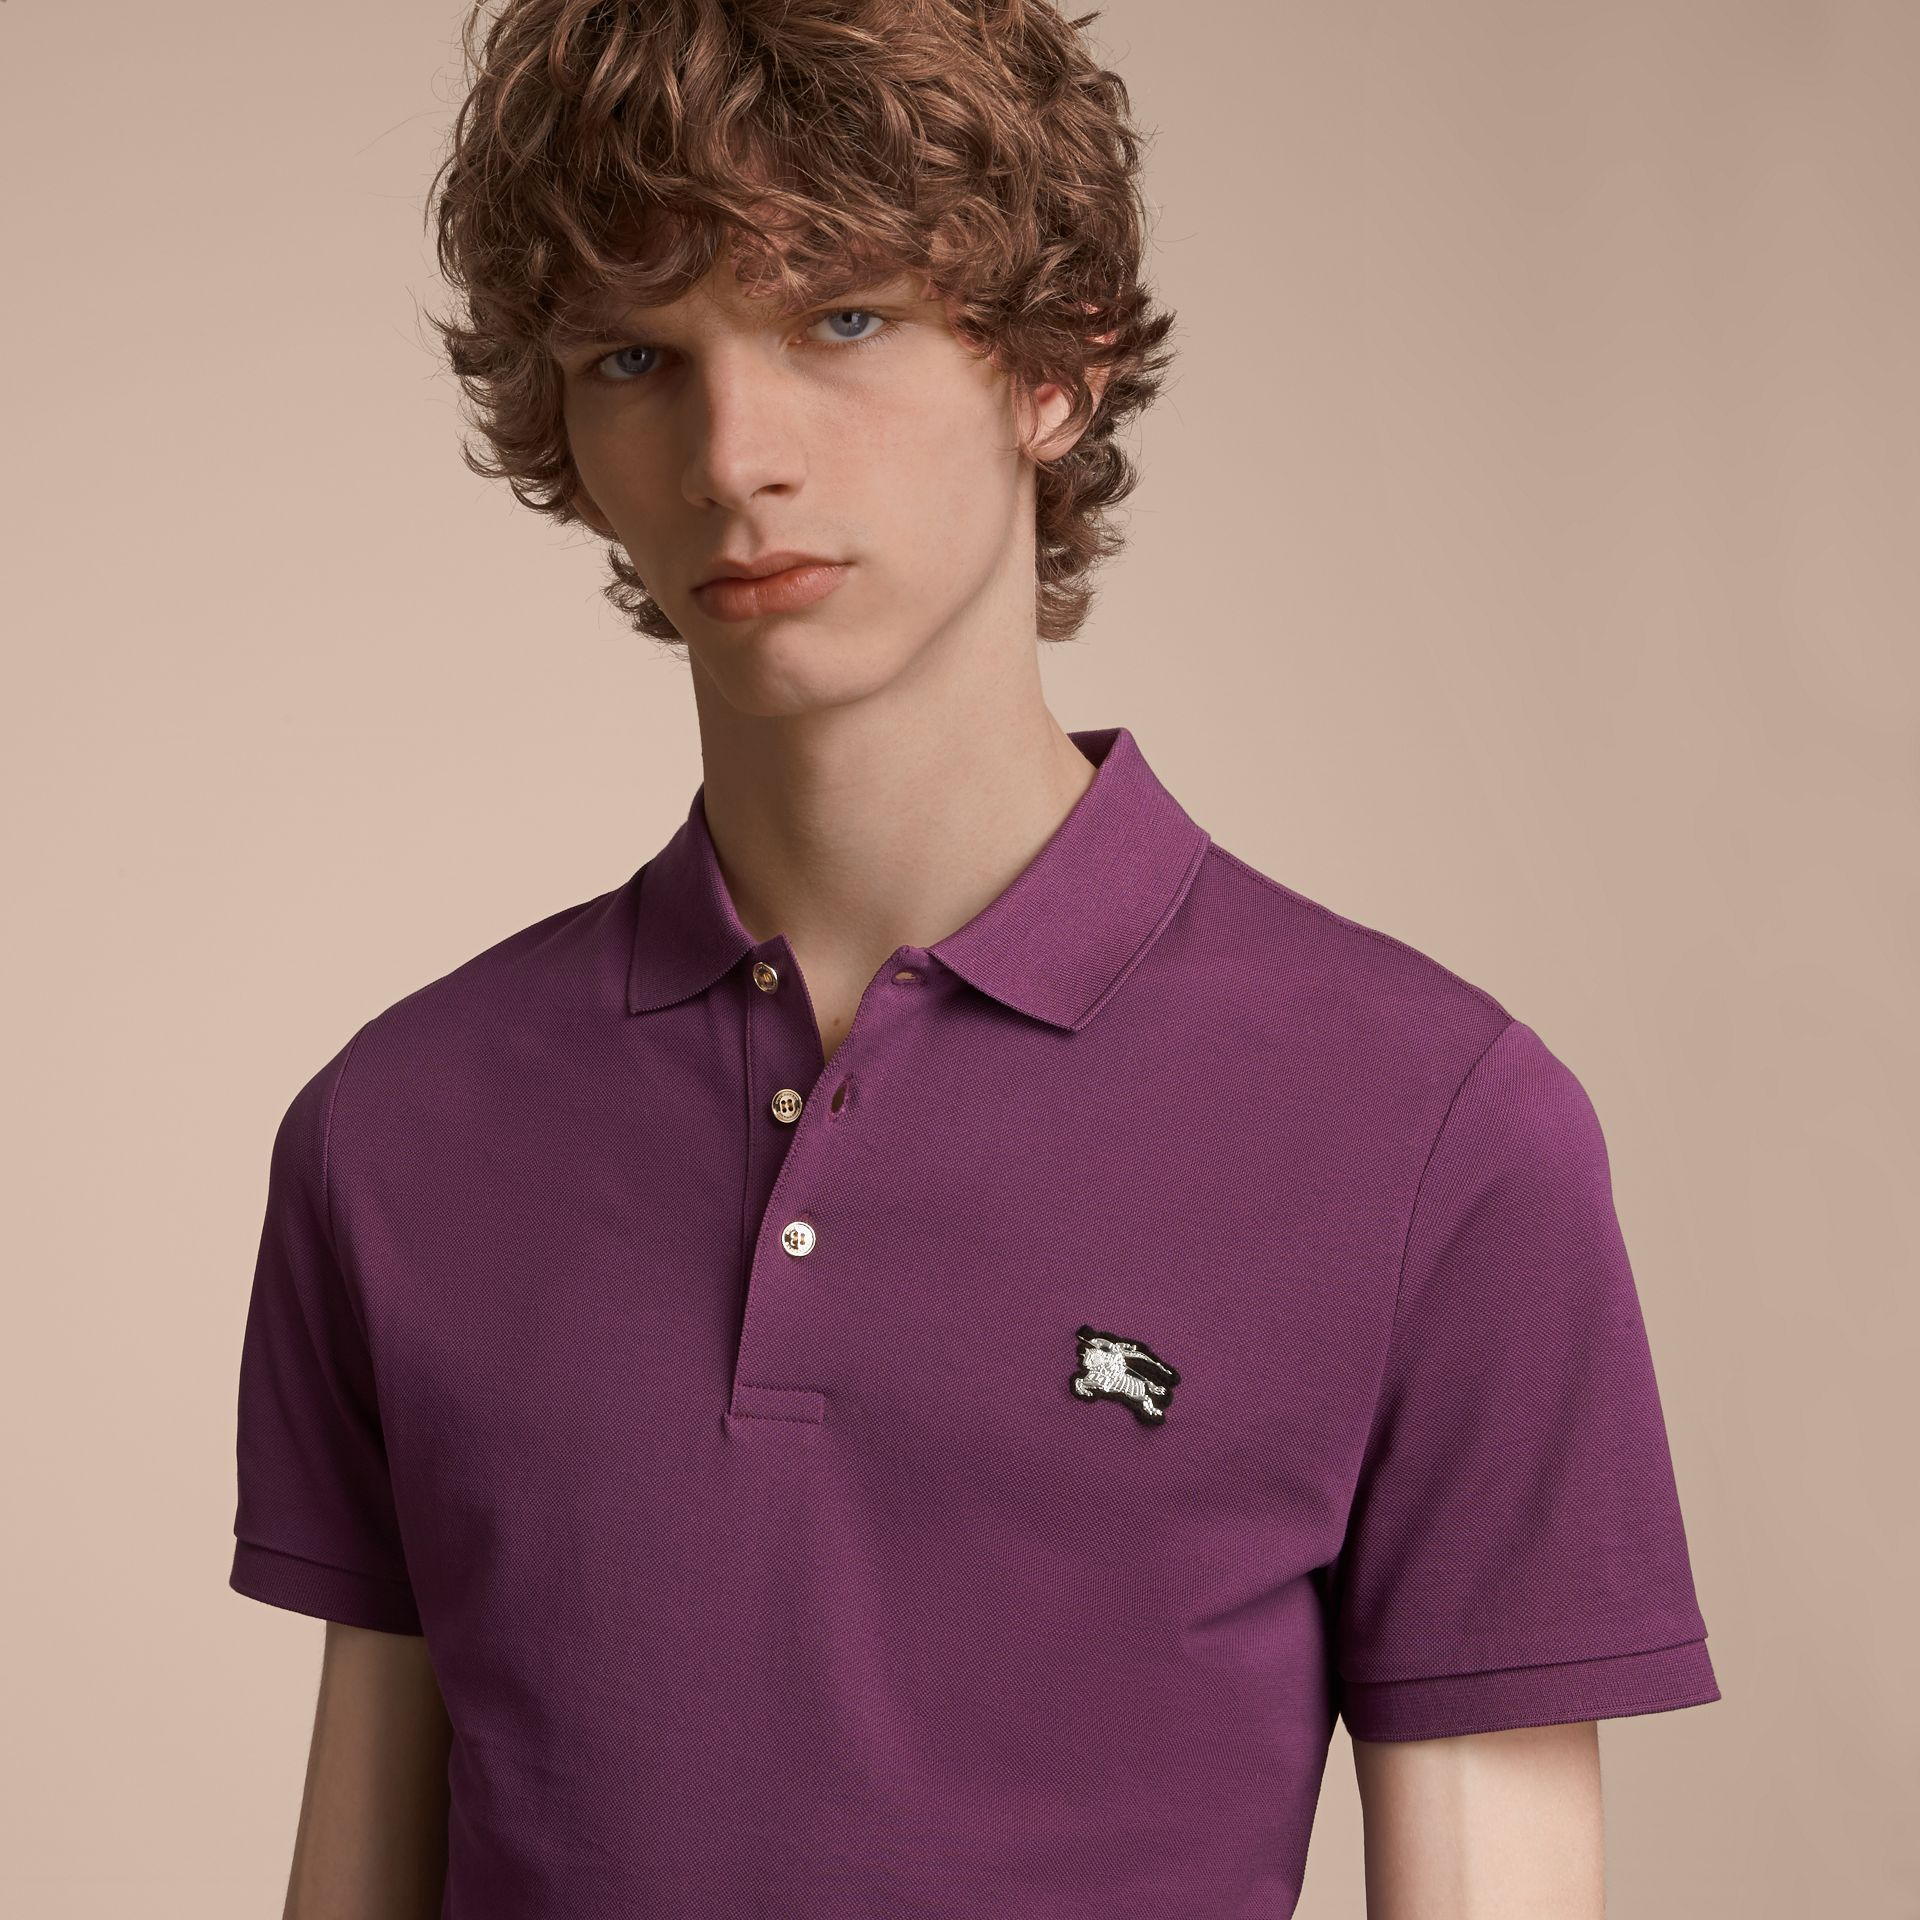 Cotton Piqué Polo Shirt in Heather - Men | Burberry Hong Kong - gallery image 5